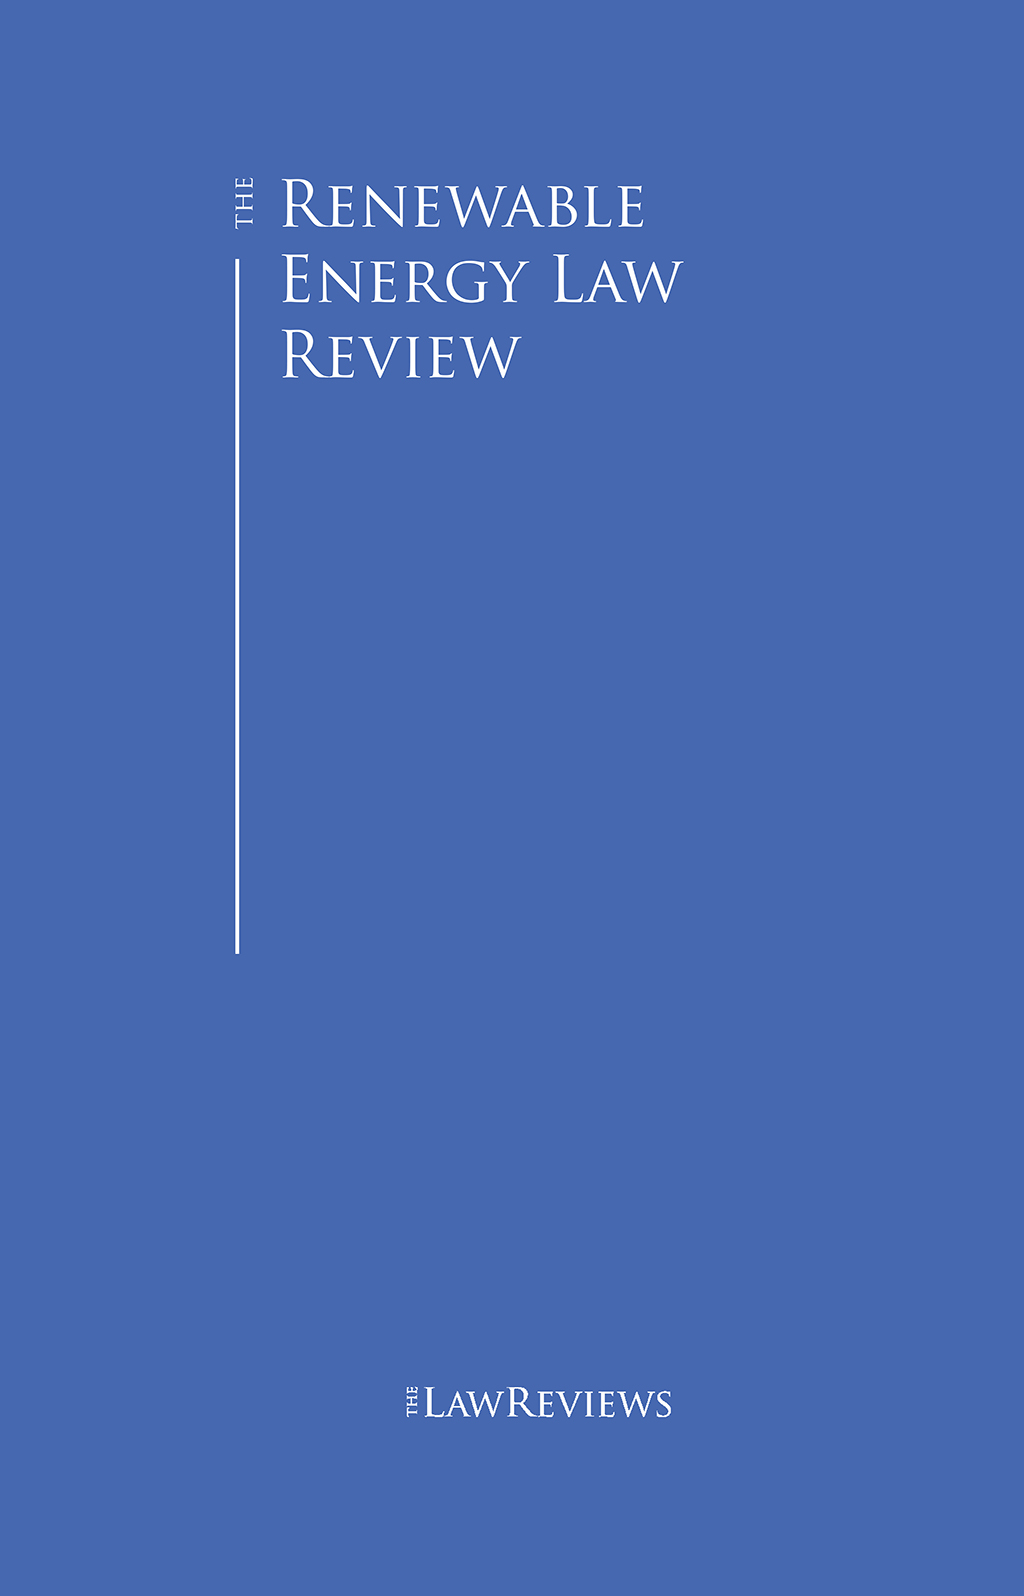 The Renewable Energy Law Review